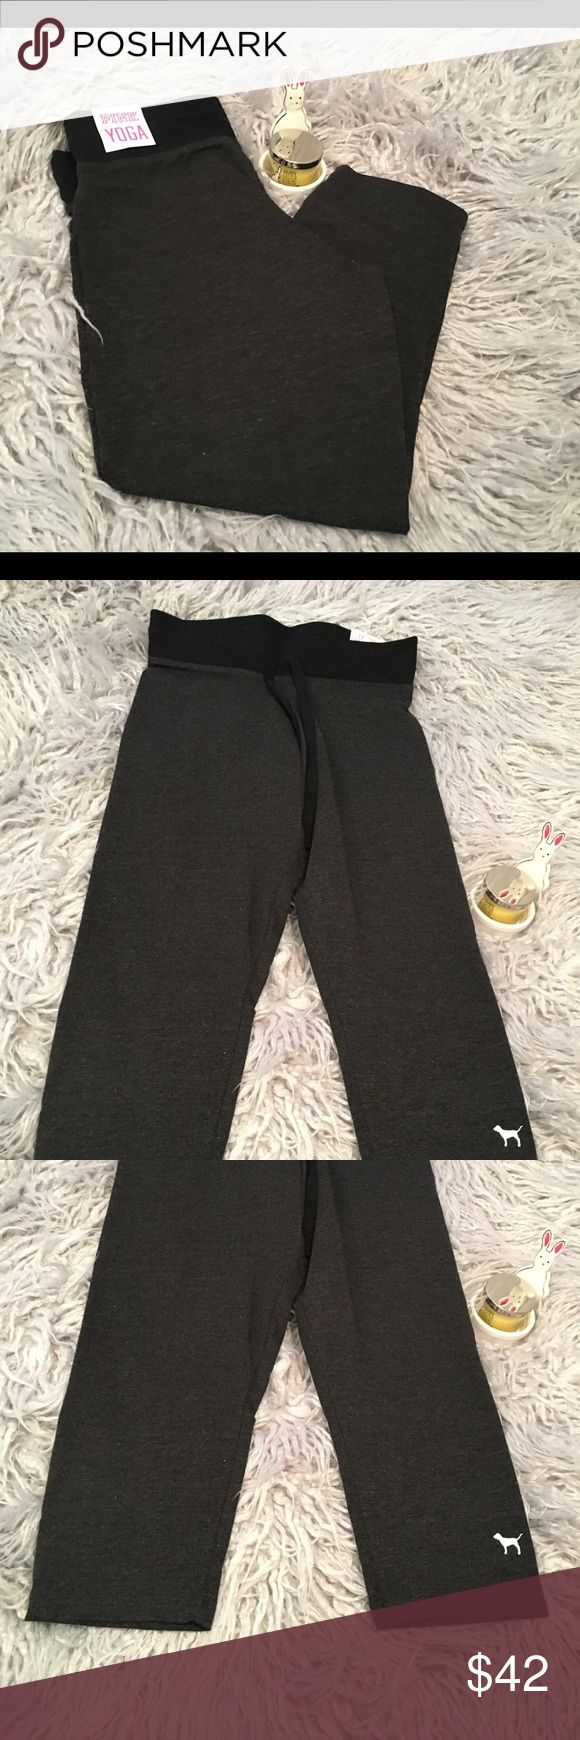 VS Pink Yoga Campus Crop Legging 💕 Brand new with tags, background/props not for sale PINK Victoria's Secret Pants Ankle & Cropped